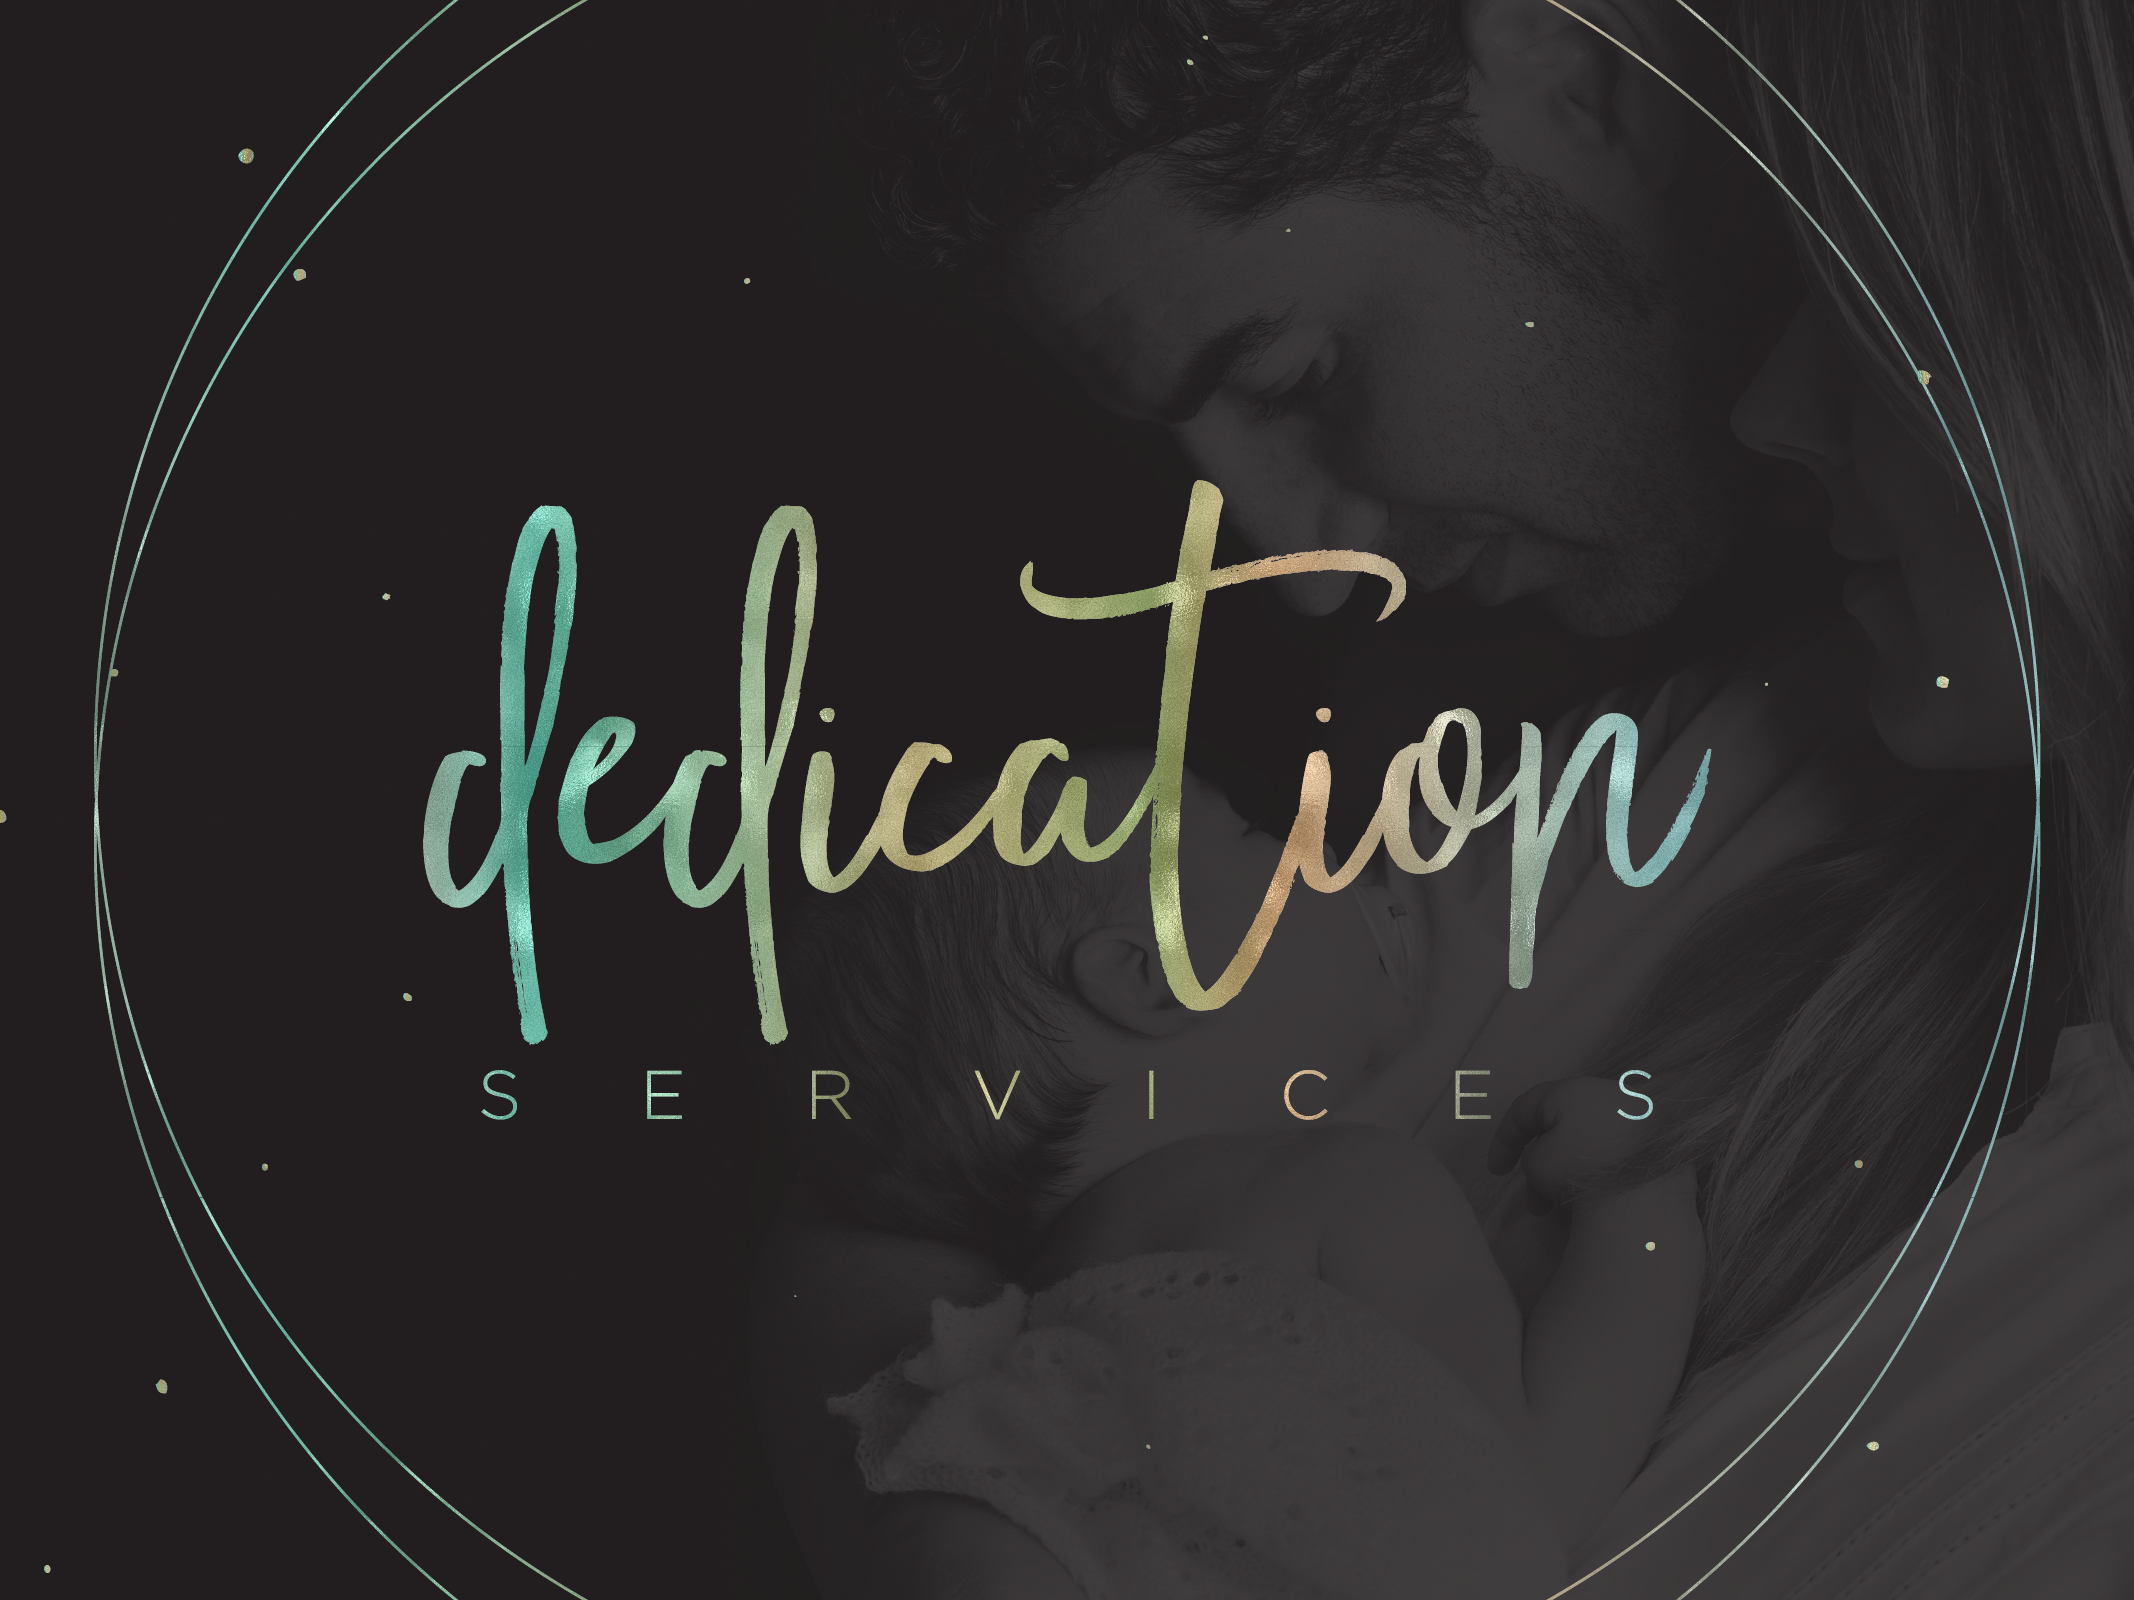 Dedication services new 02